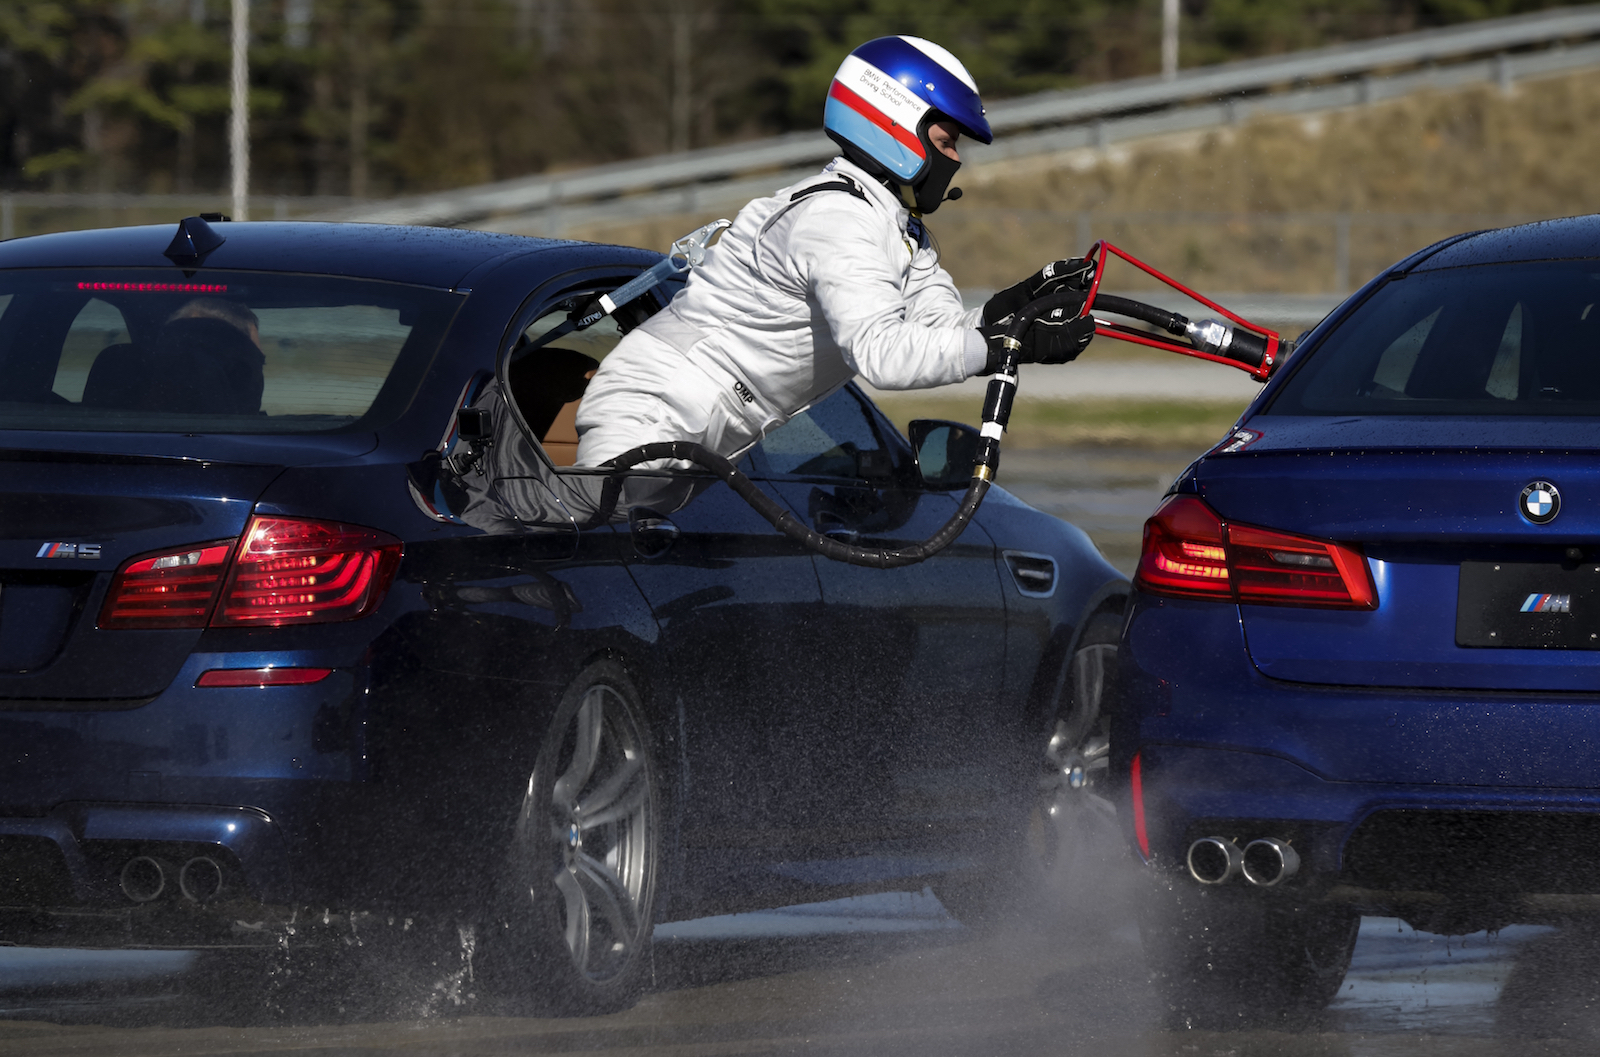 Used Cars Las Vegas >> What You Didn't Hear About BMW's Insane 8-Hour Drift Record » AutoGuide.com News